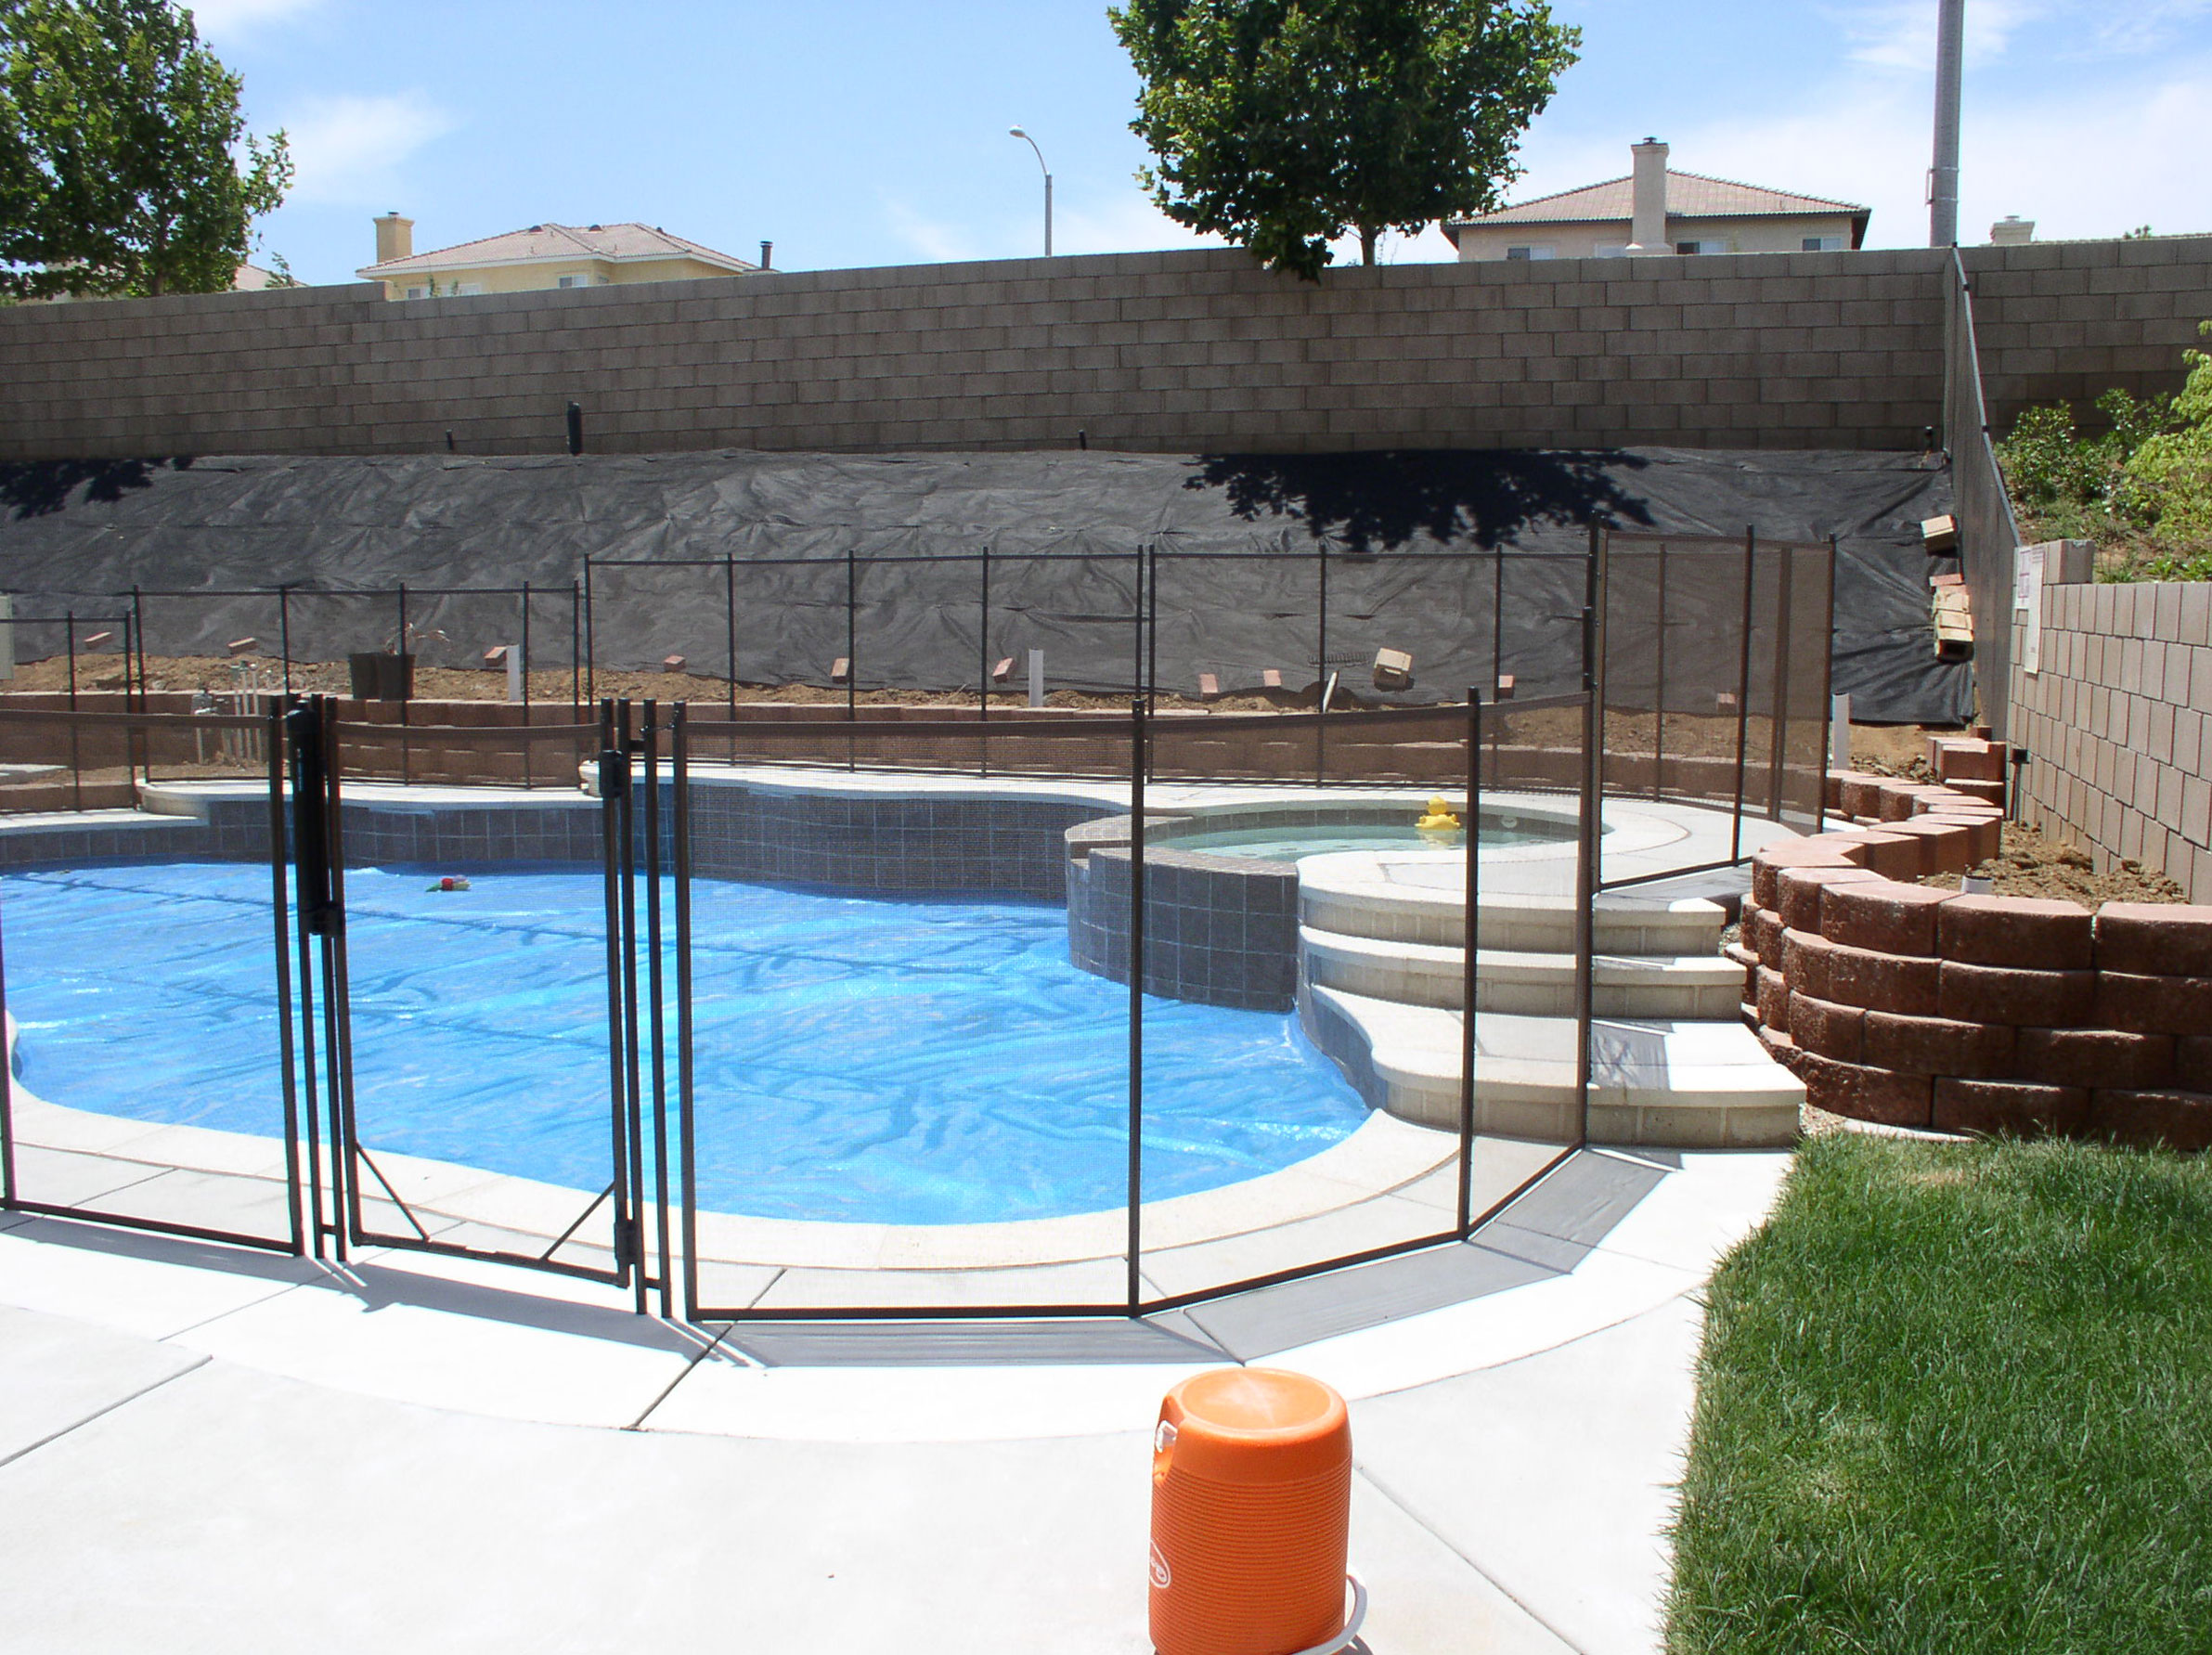 Swimming pool safety practices